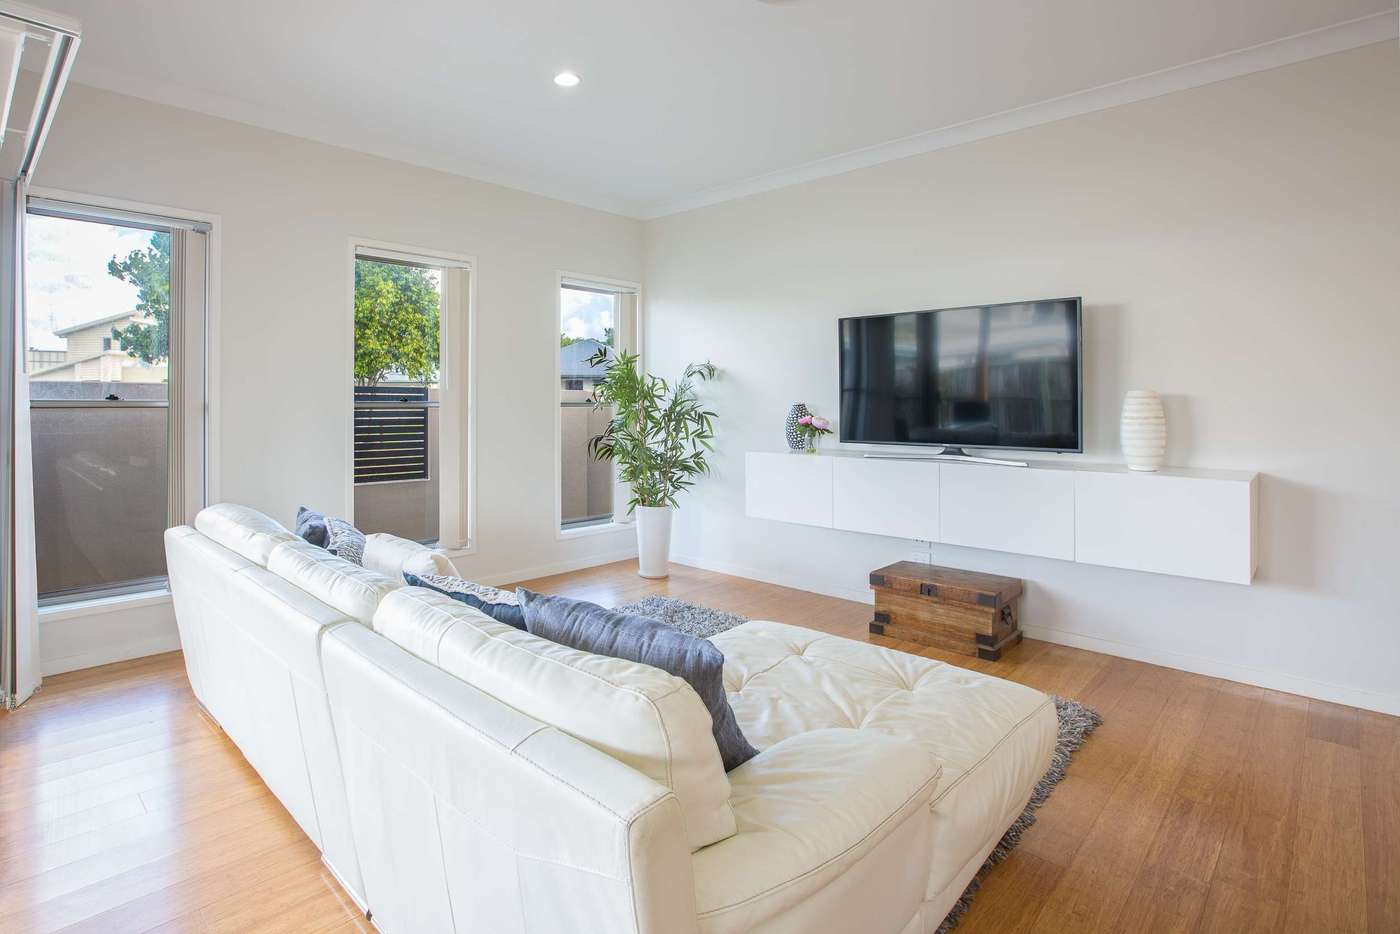 Fifth view of Homely house listing, 45 Azure Way, Hope Island QLD 4212